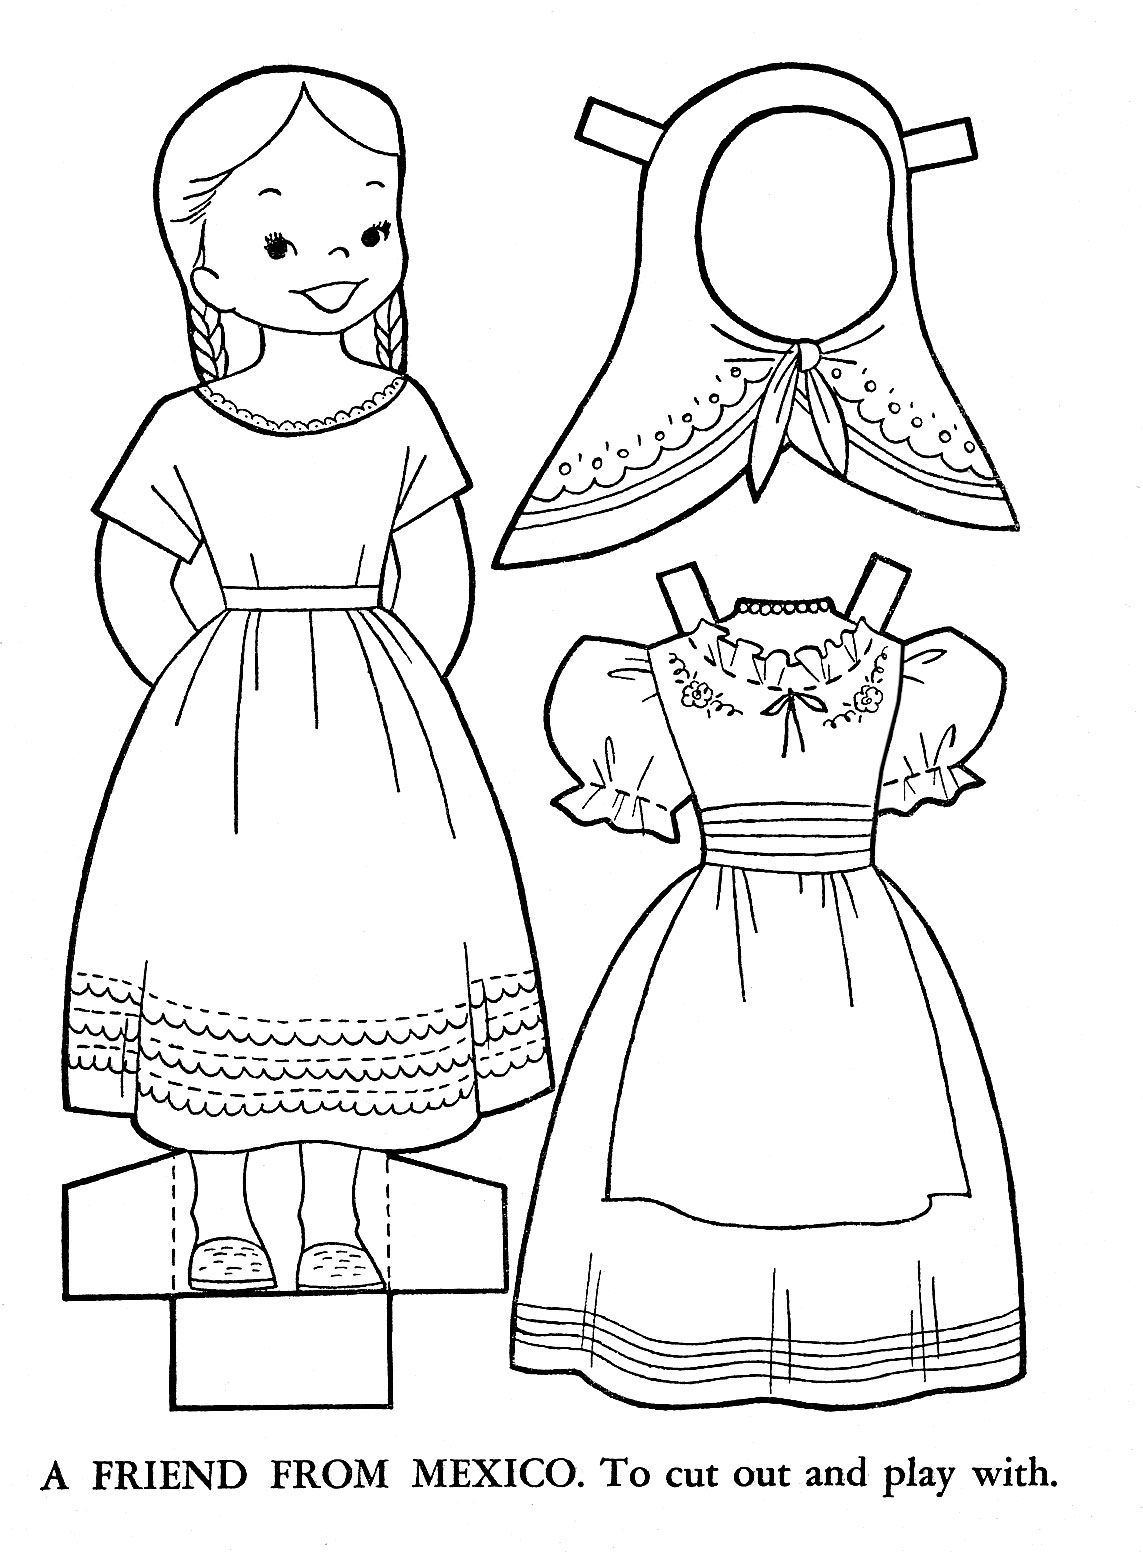 children of other lands coloring and paper doll patterns